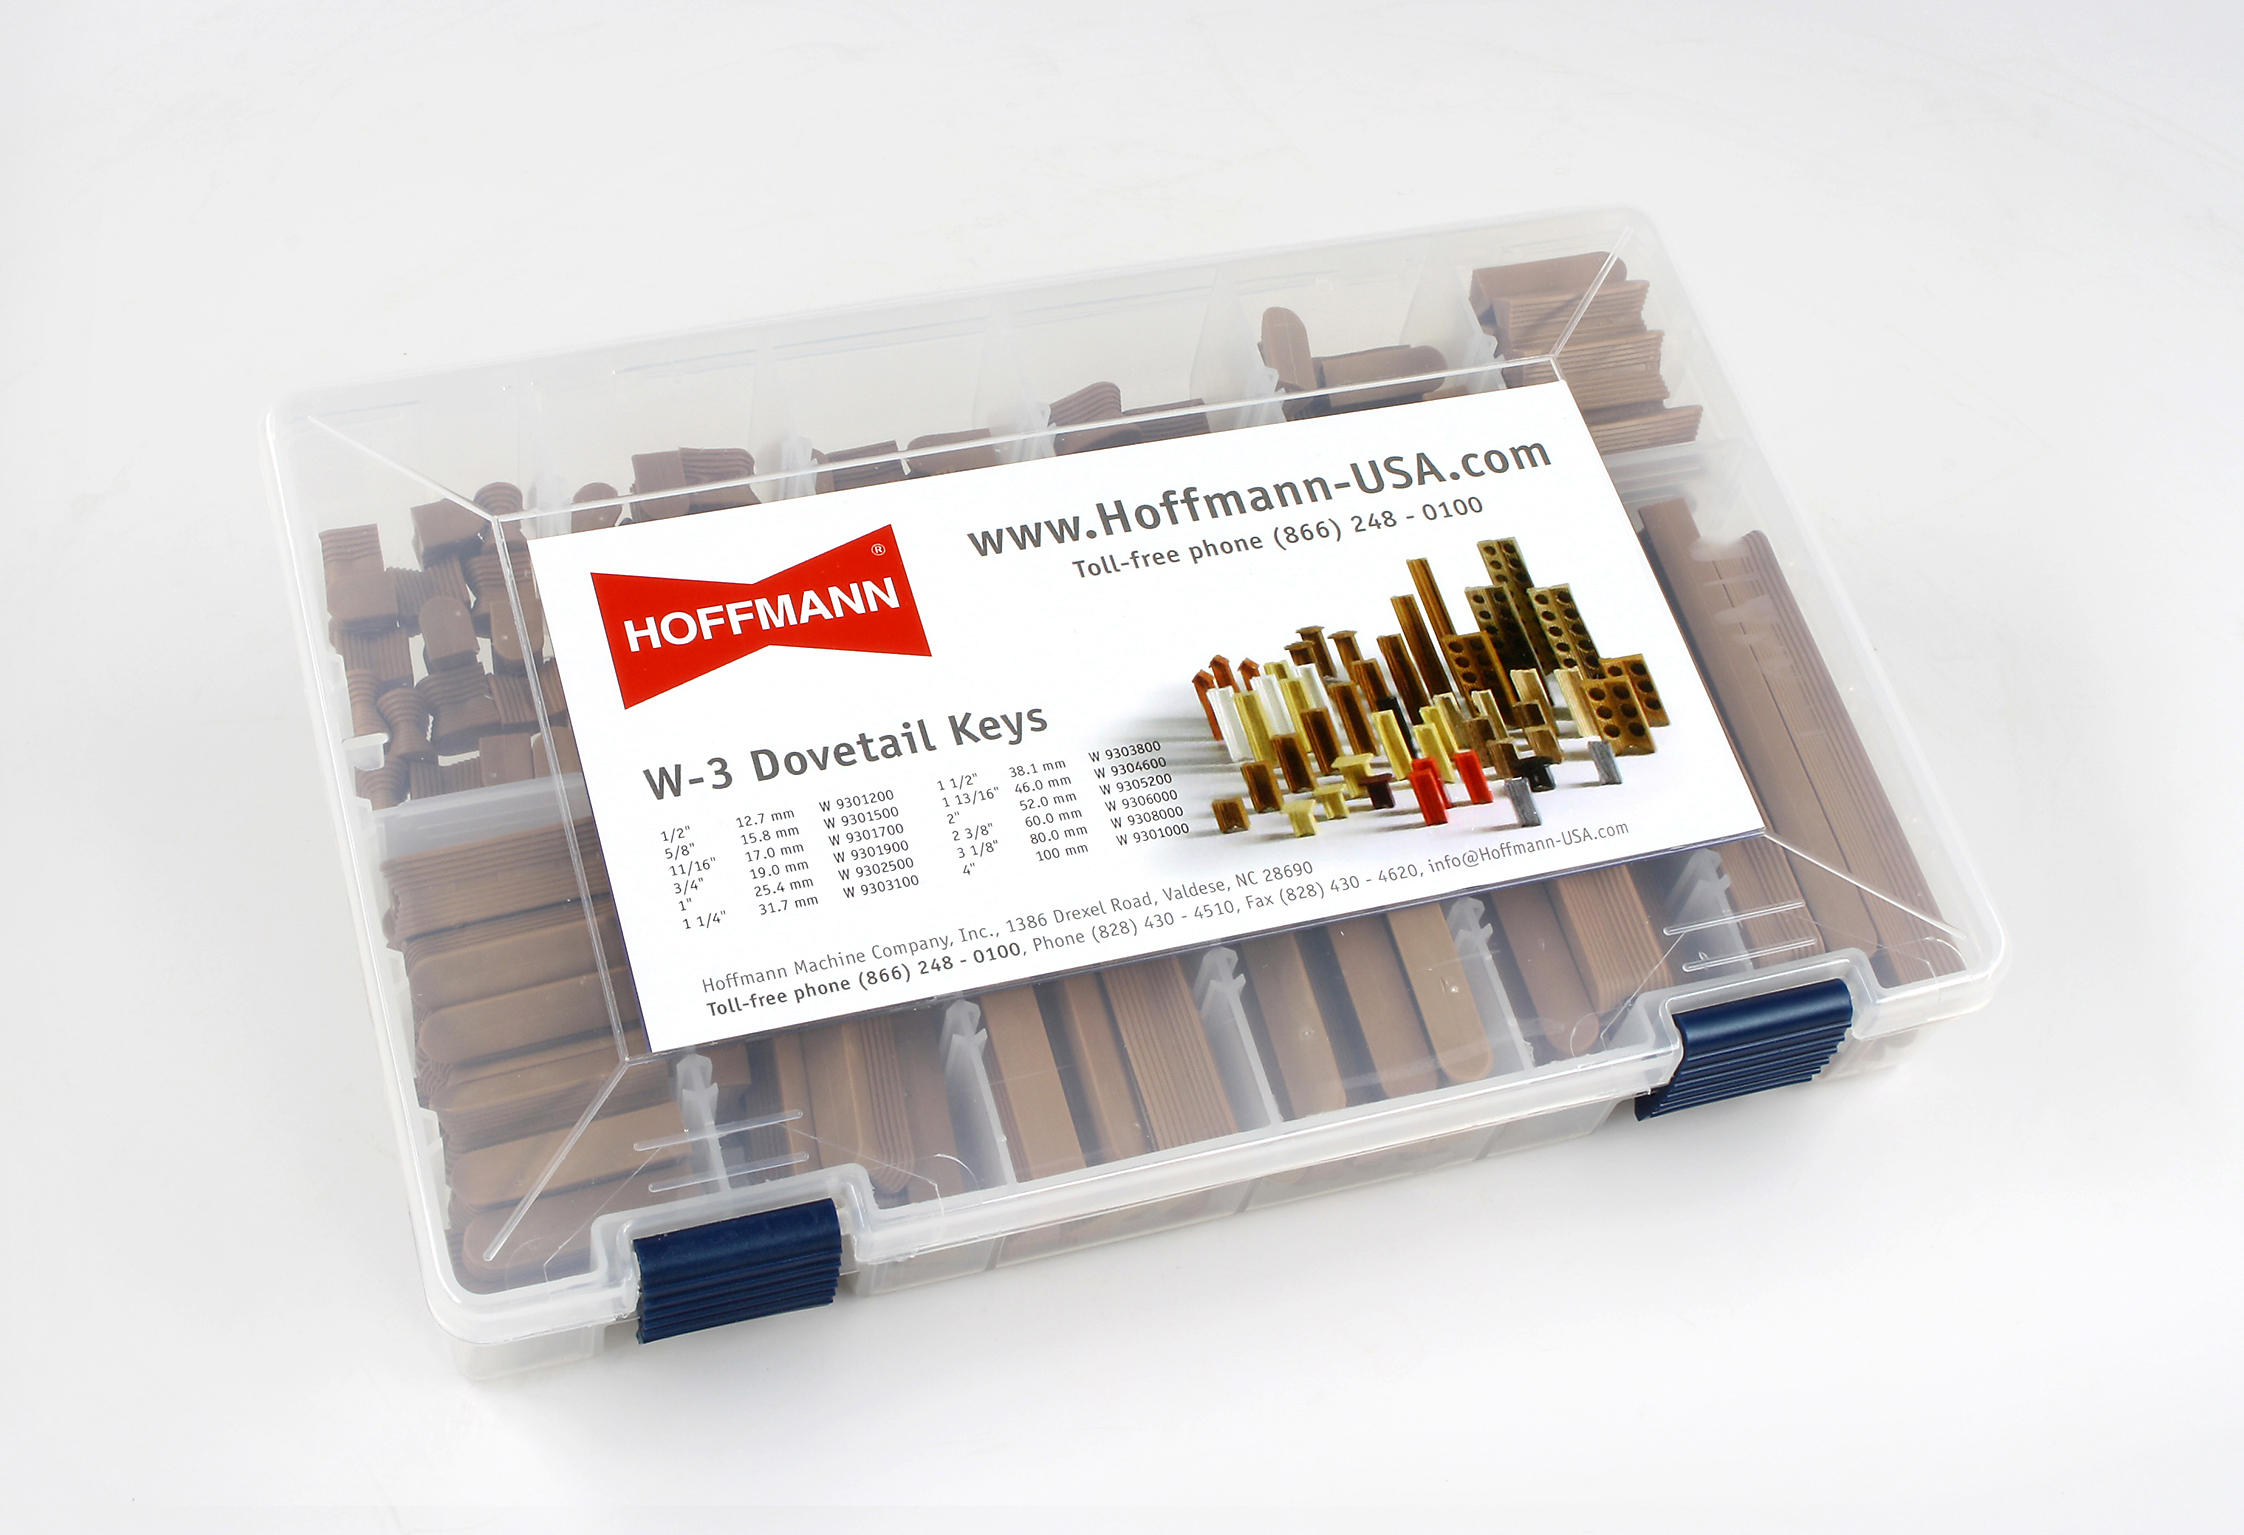 hoffmann-dovetail-key-sample-case-w3-closed.jpg